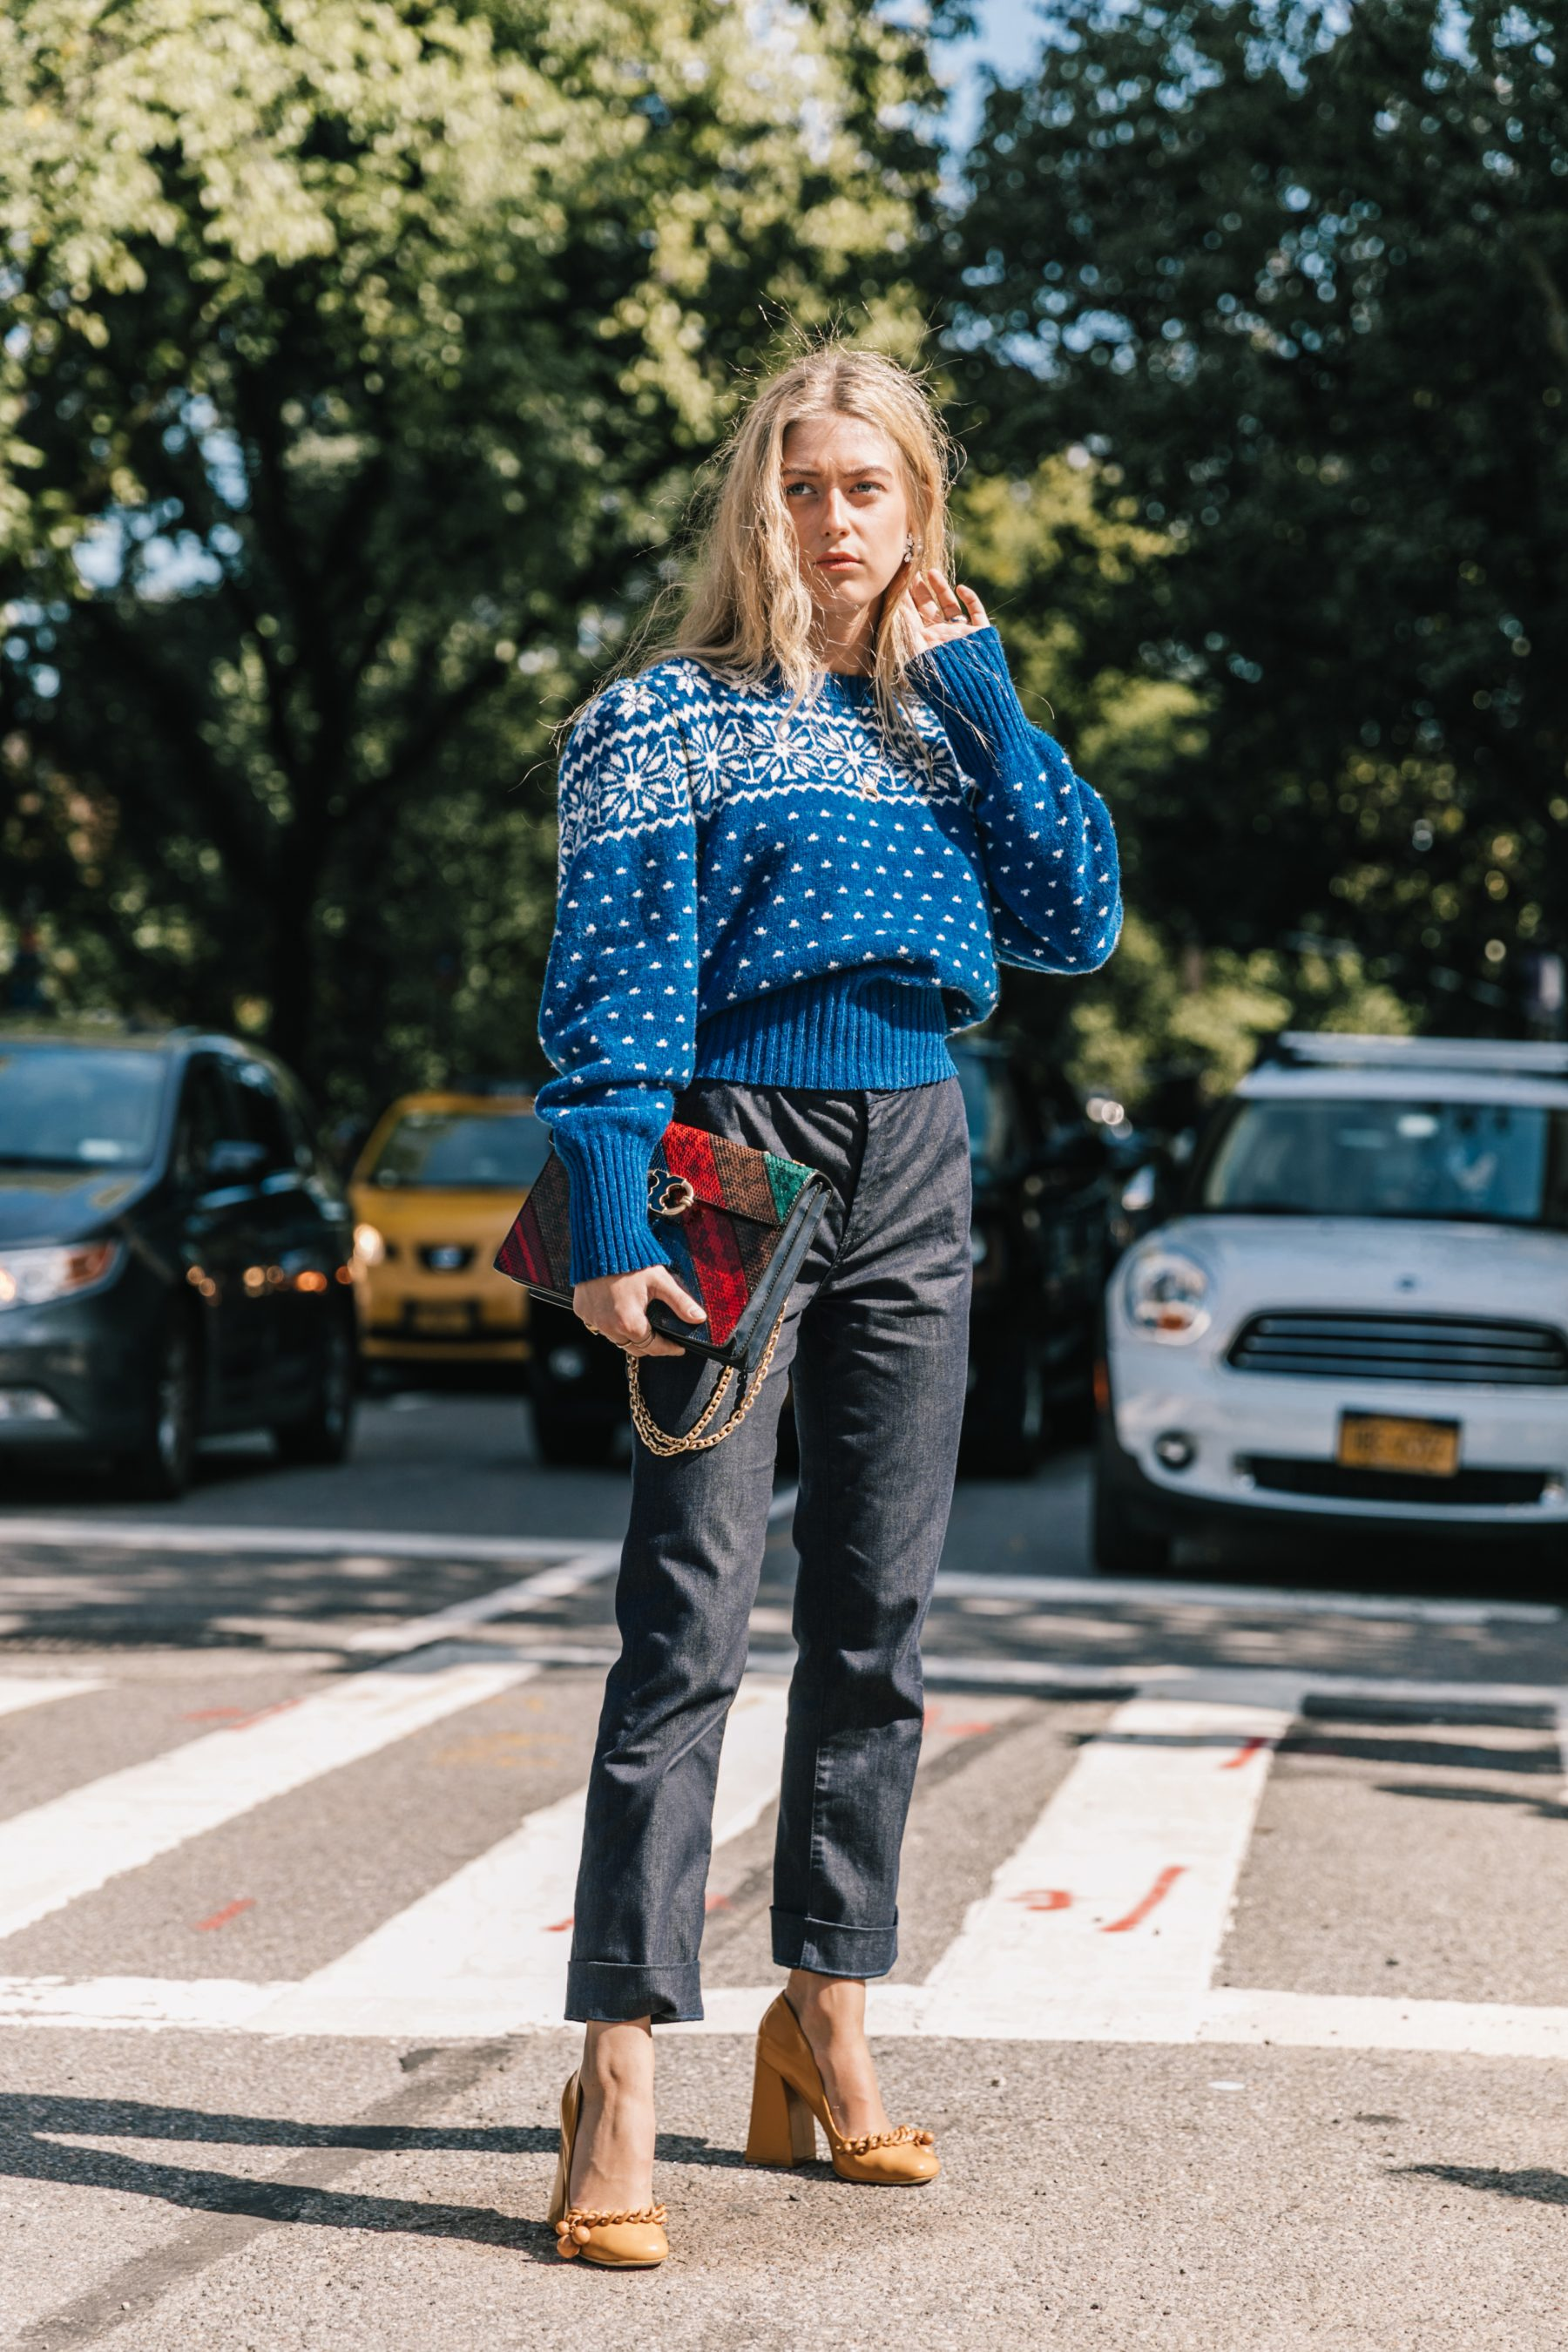 NYFW-SS18-New_York_Fashion_Week-Street_Style-Vogue-Collage_Vintage-99-1800x2700.jpg